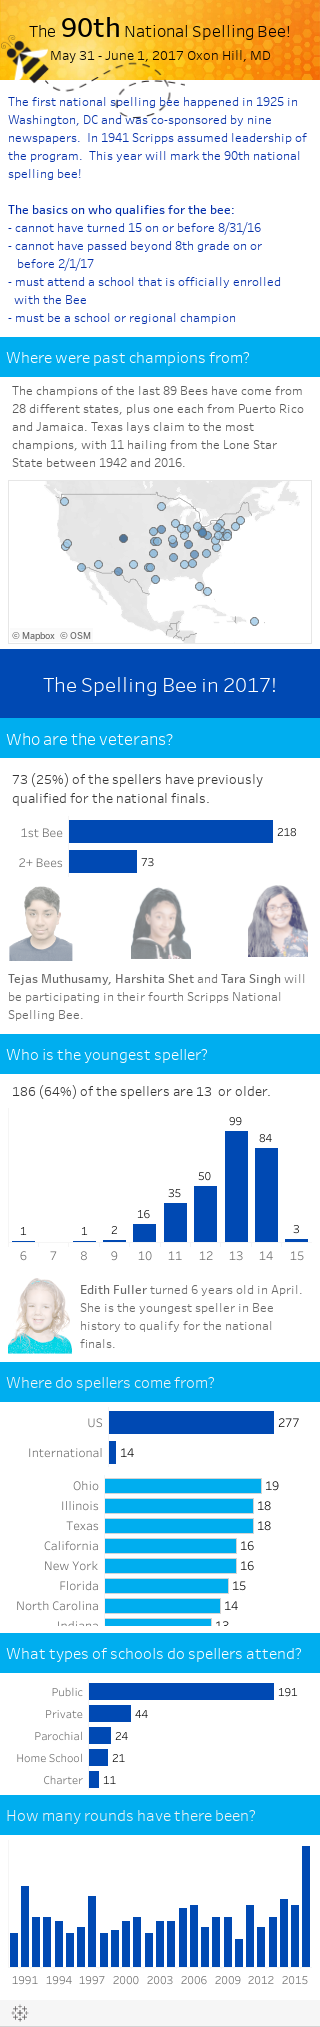 90th National Spelling Bee